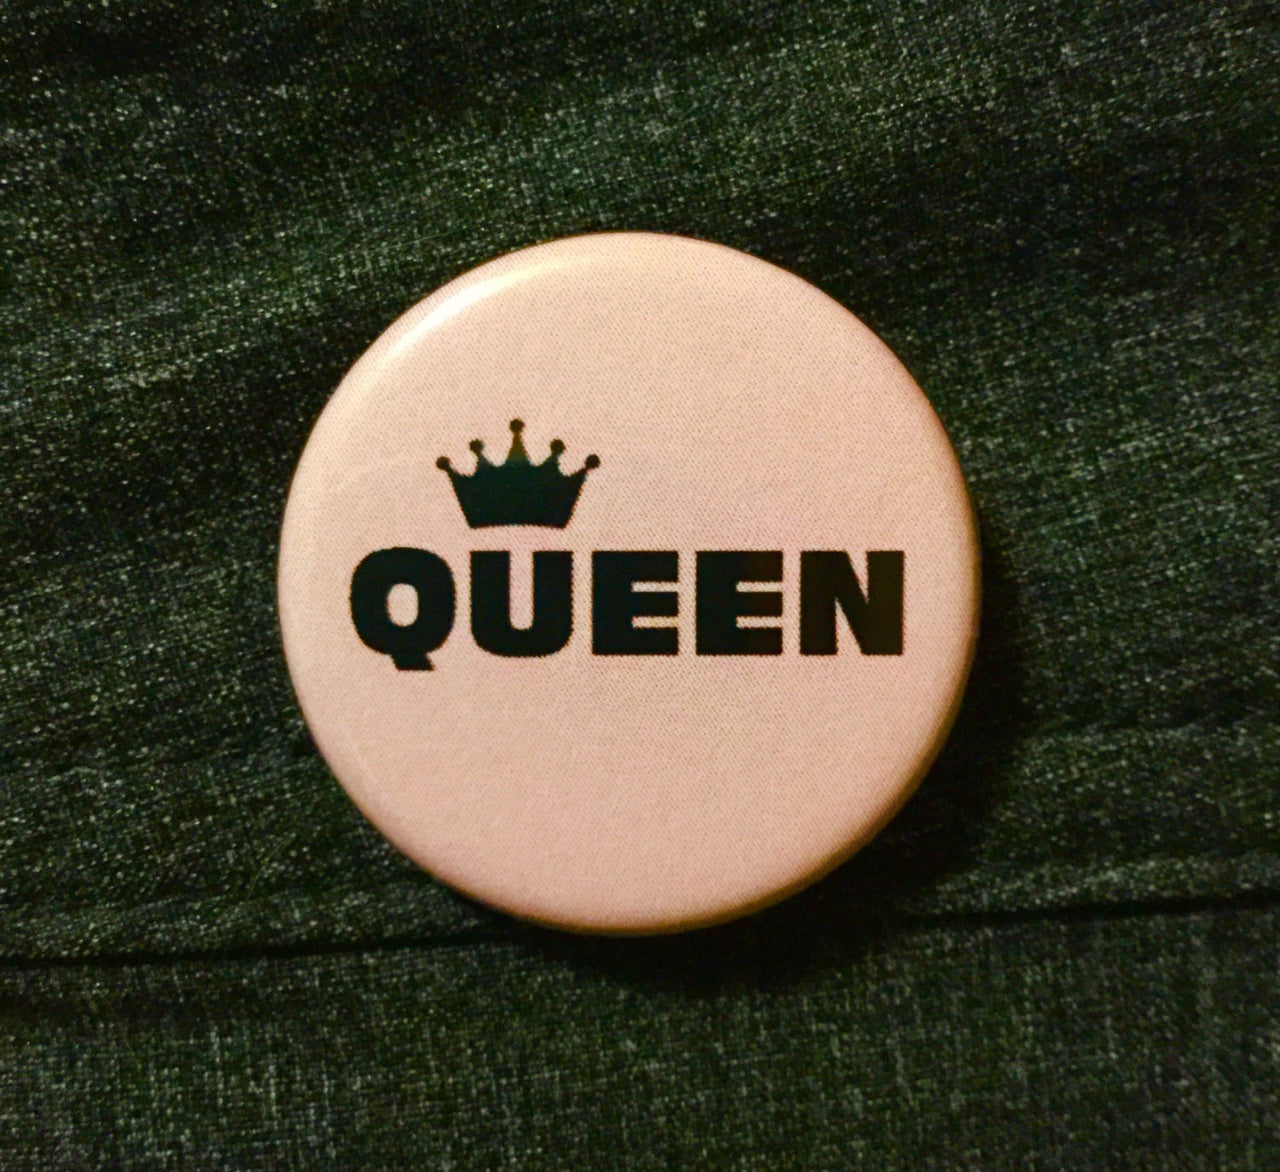 Queen - Radical Buttons